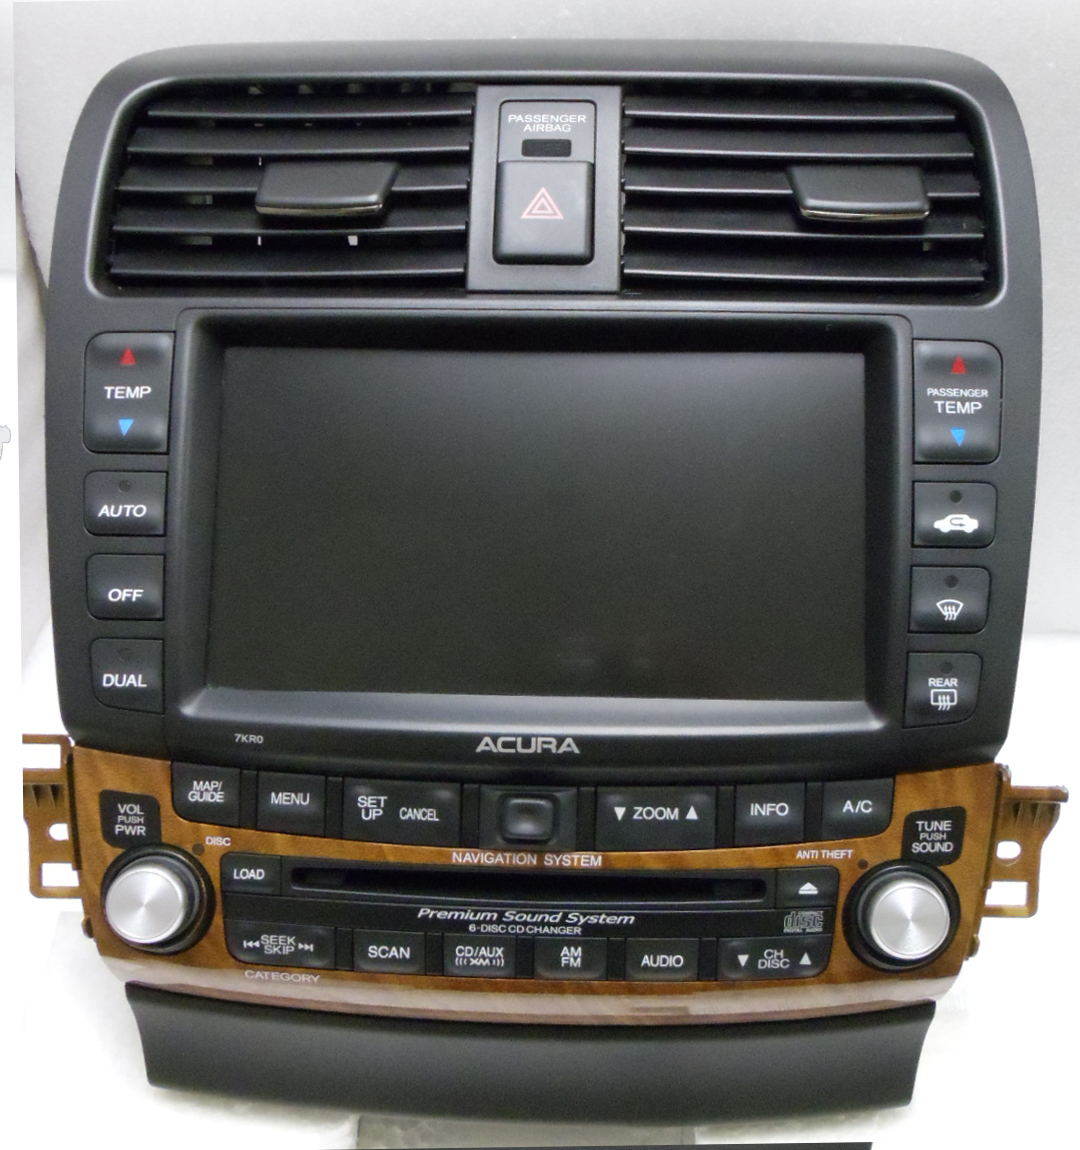 acura tsx navigation gps display screen radio 6 disc. Black Bedroom Furniture Sets. Home Design Ideas